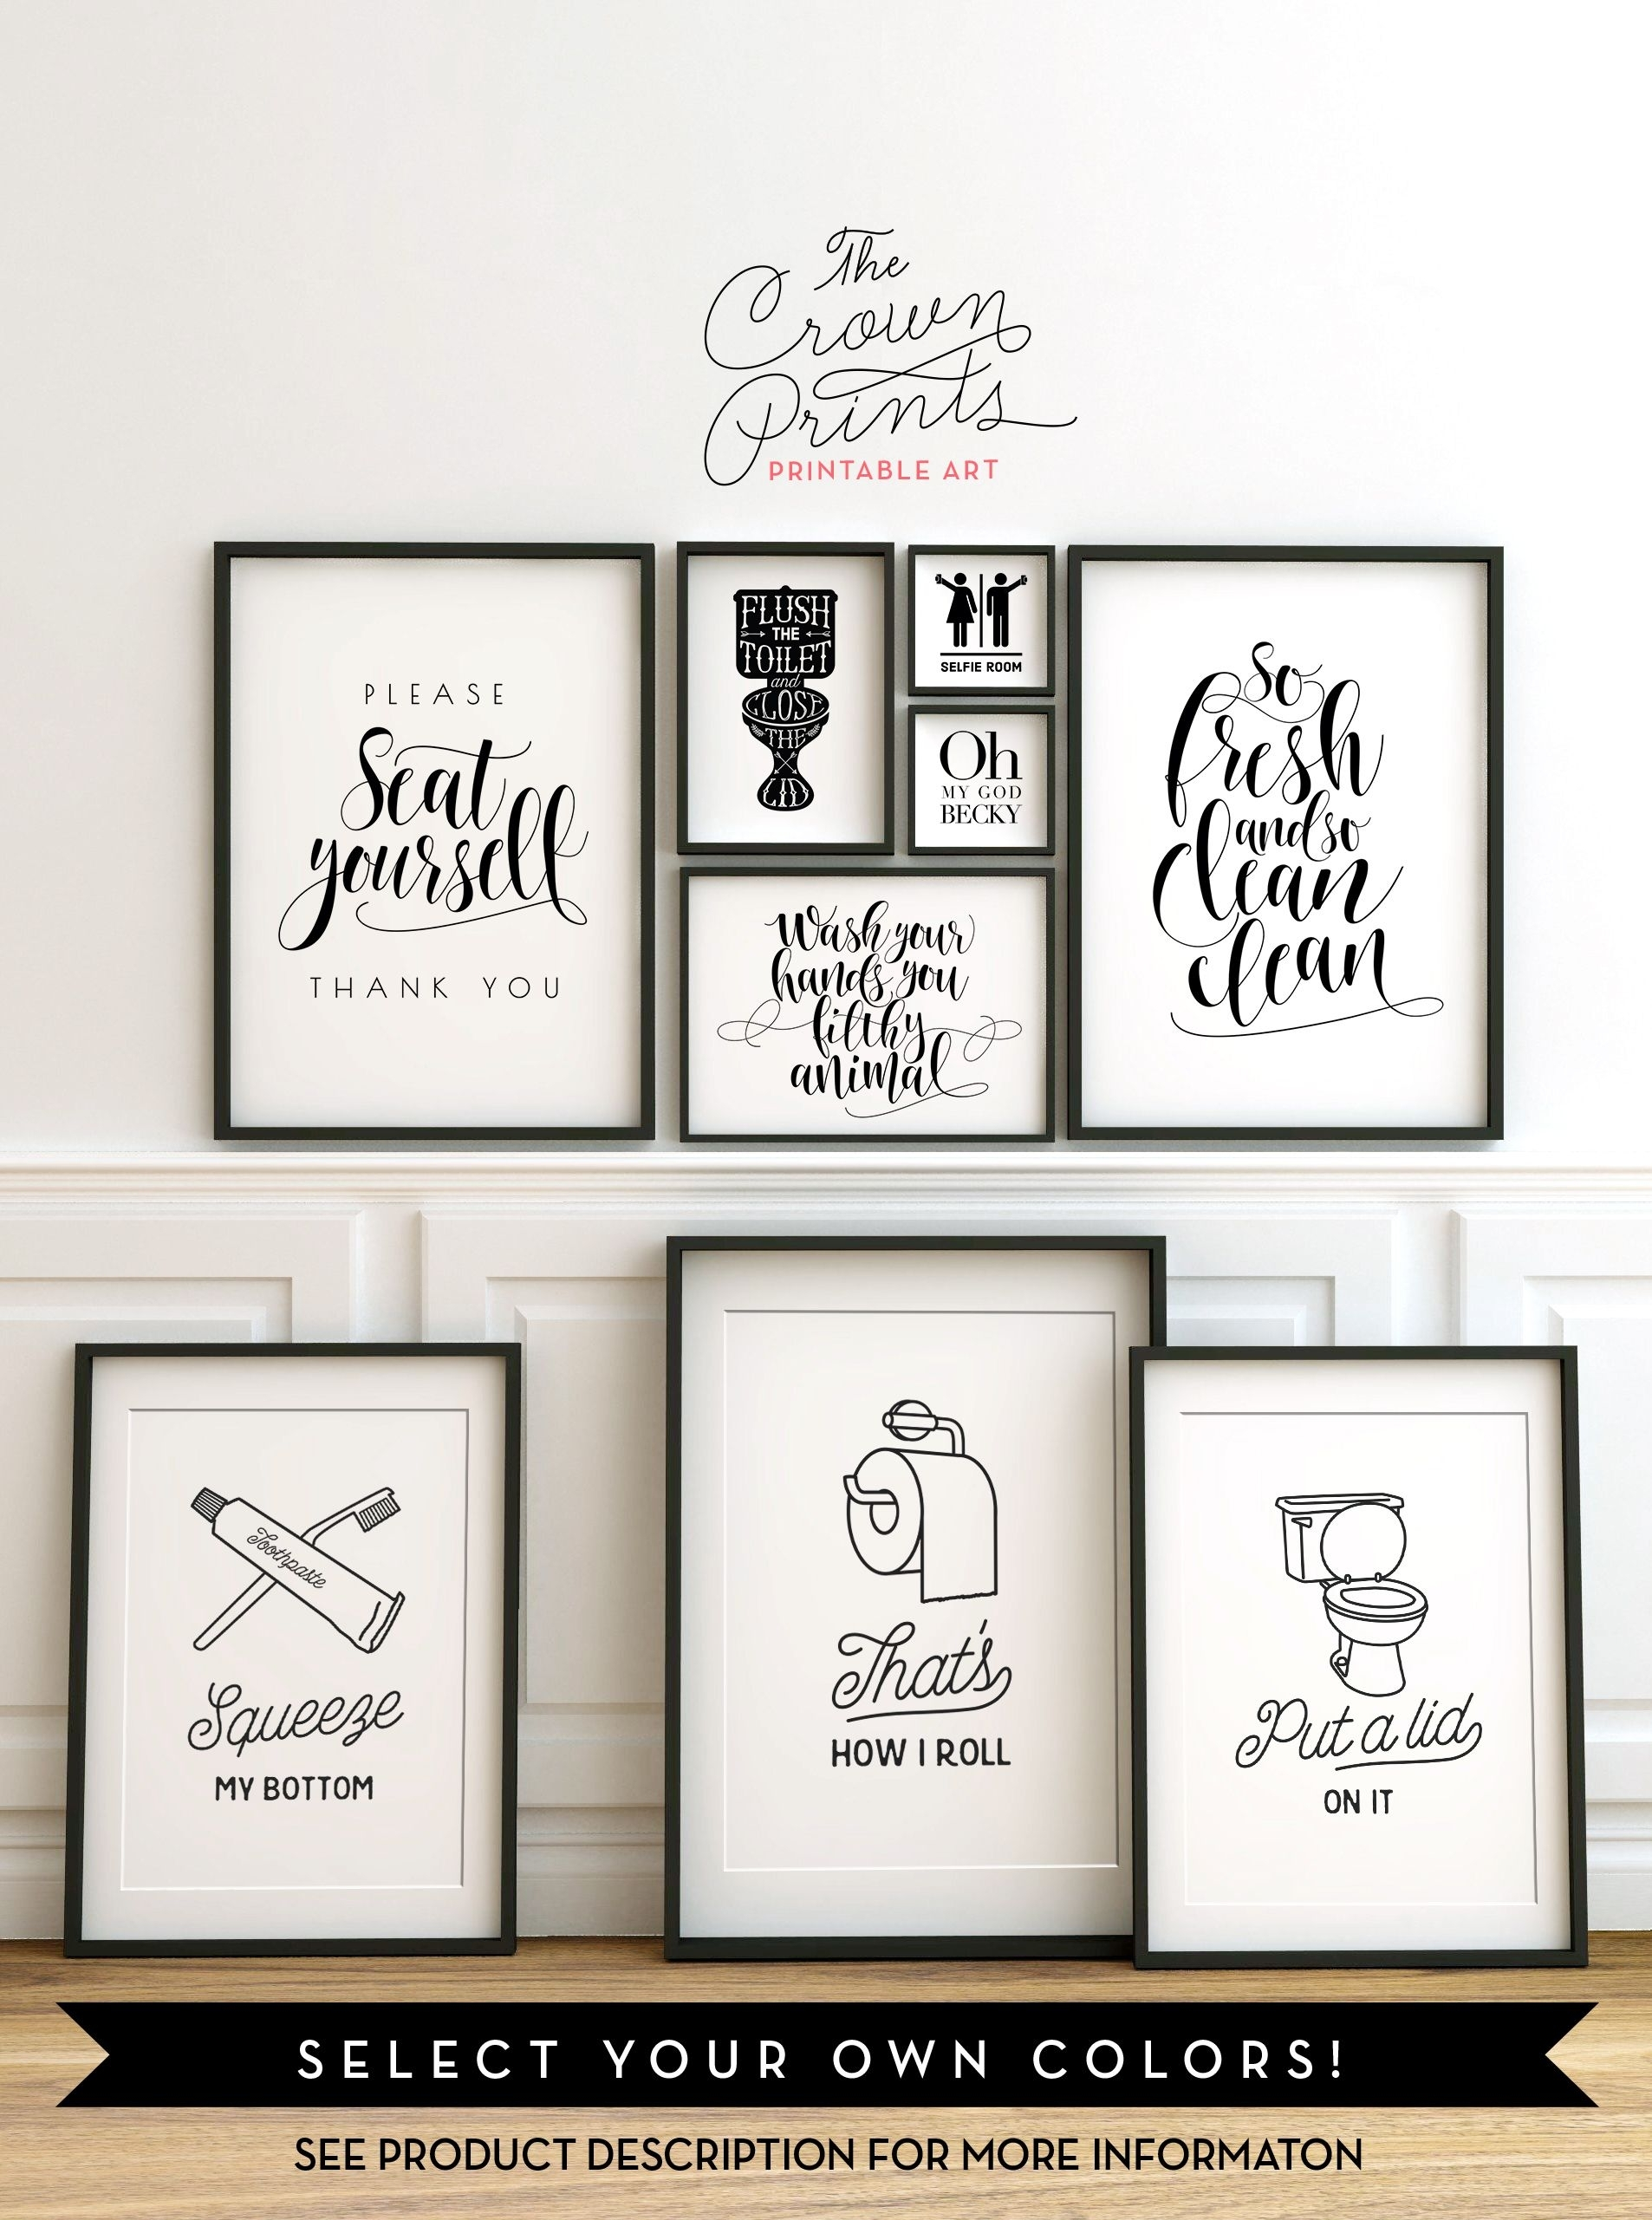 Printable Bathroom Wall Art From The Crown Prints On Etsy – Lots Intended For Latest Framed Art Prints For Bathroom (View 13 of 15)